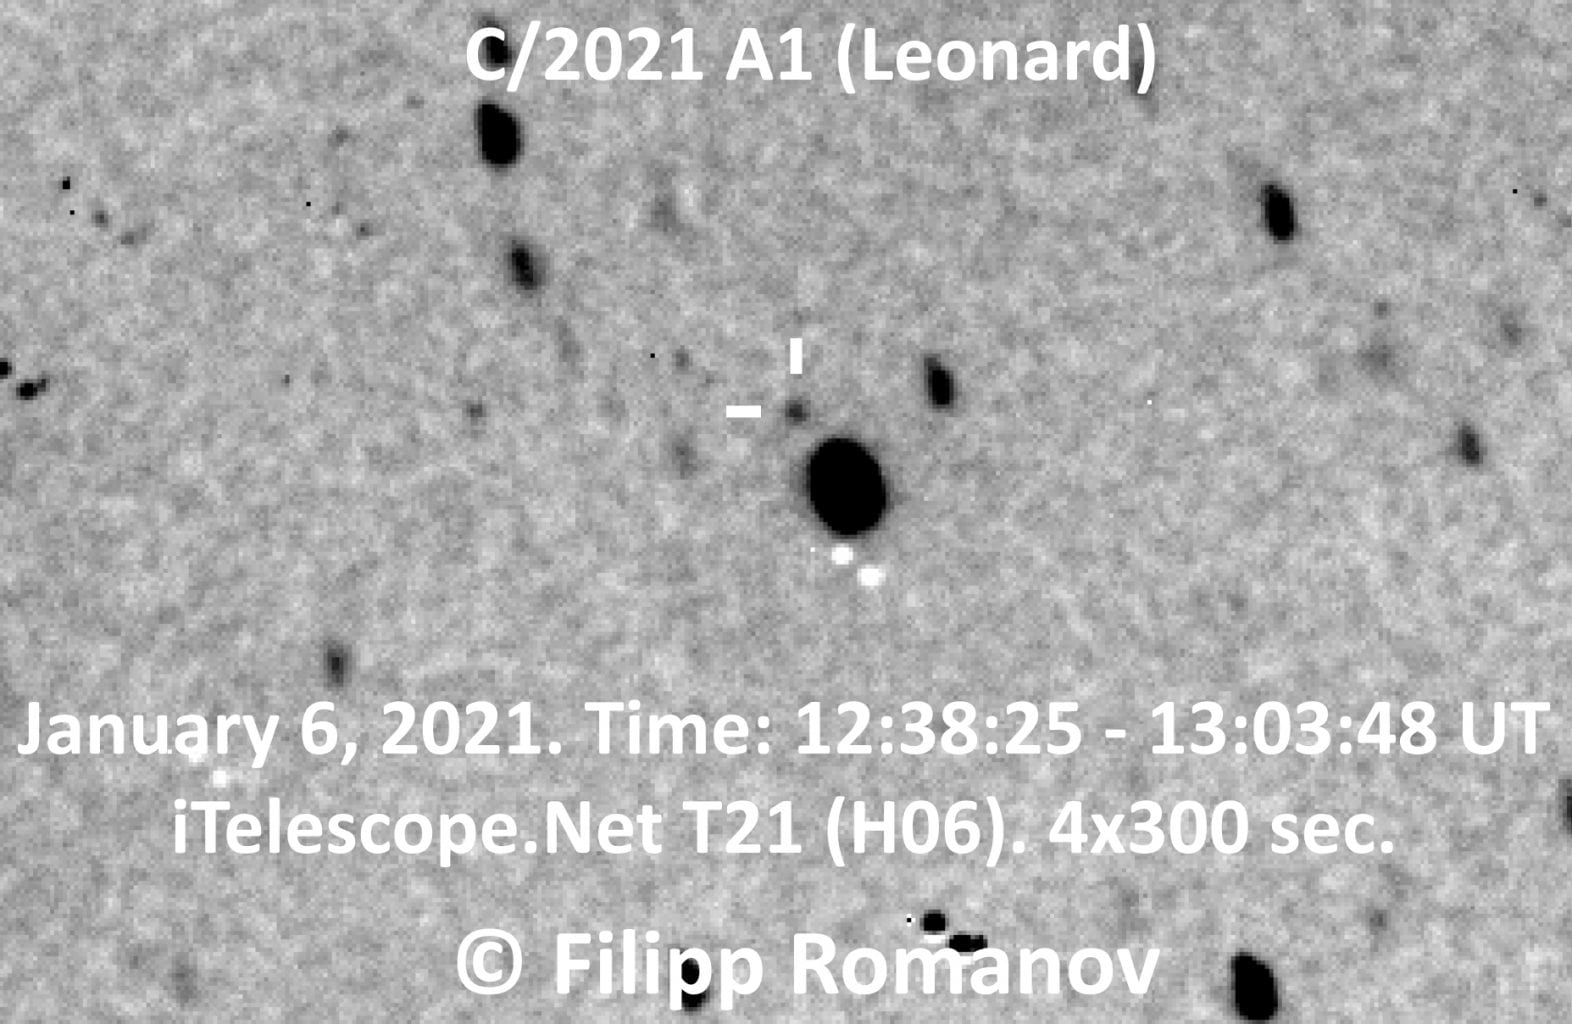 Currently, the comet looks like nothing more than a small dot in the sky. In December, we will likely be able to see it with the naked eye. Credit: Filipp Romanov